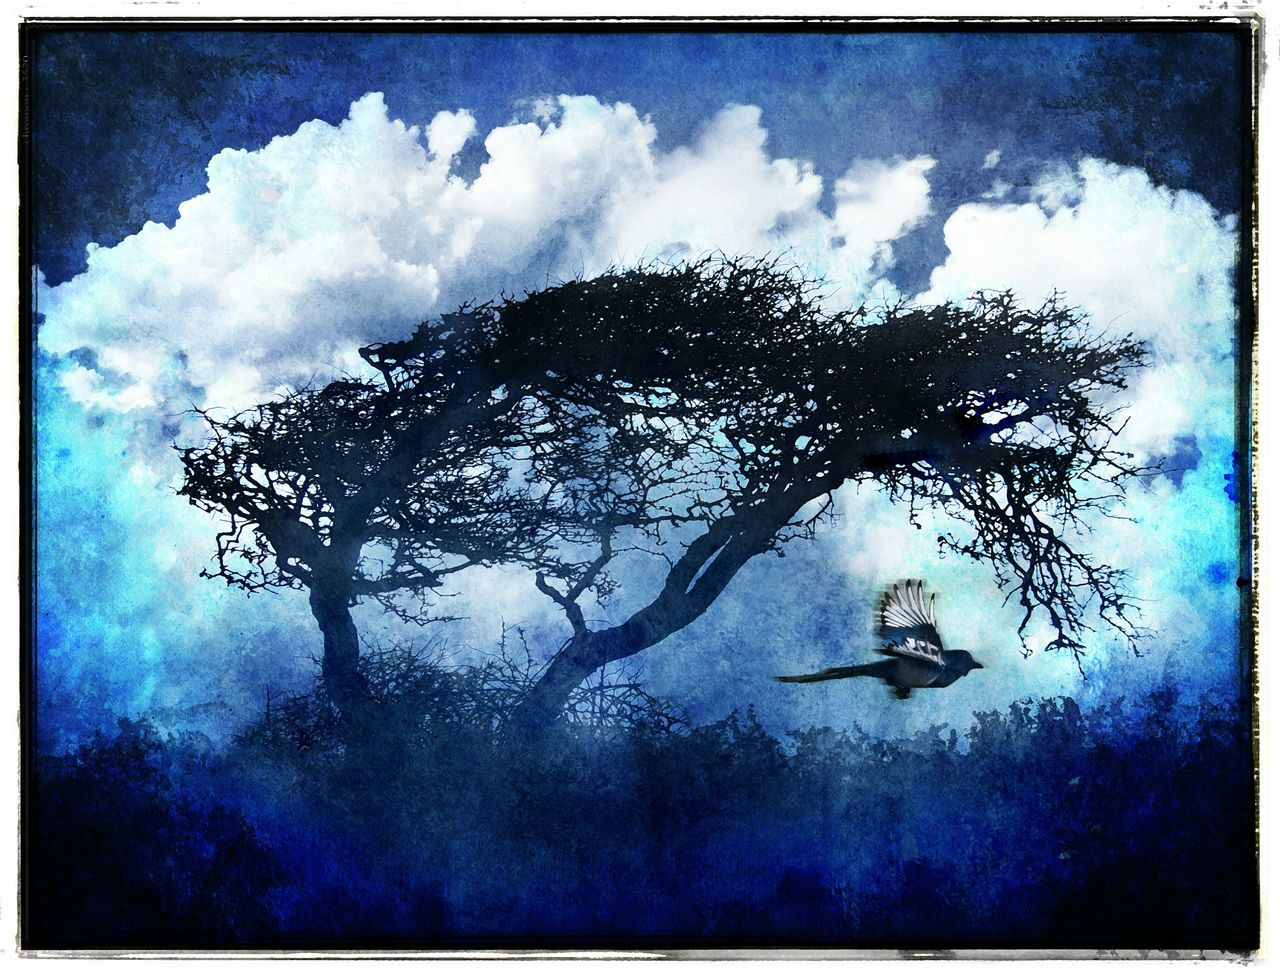 Blue Trees Blue Trees Blue Sky Windswept Windswept Trees Winter Trees Blue MontageLiberated Trees Shades Of Blue Silhouette White Clouds Blue Sky White Clouds Winter Magpie Tree Silhouette Tree Art Tree And Bird